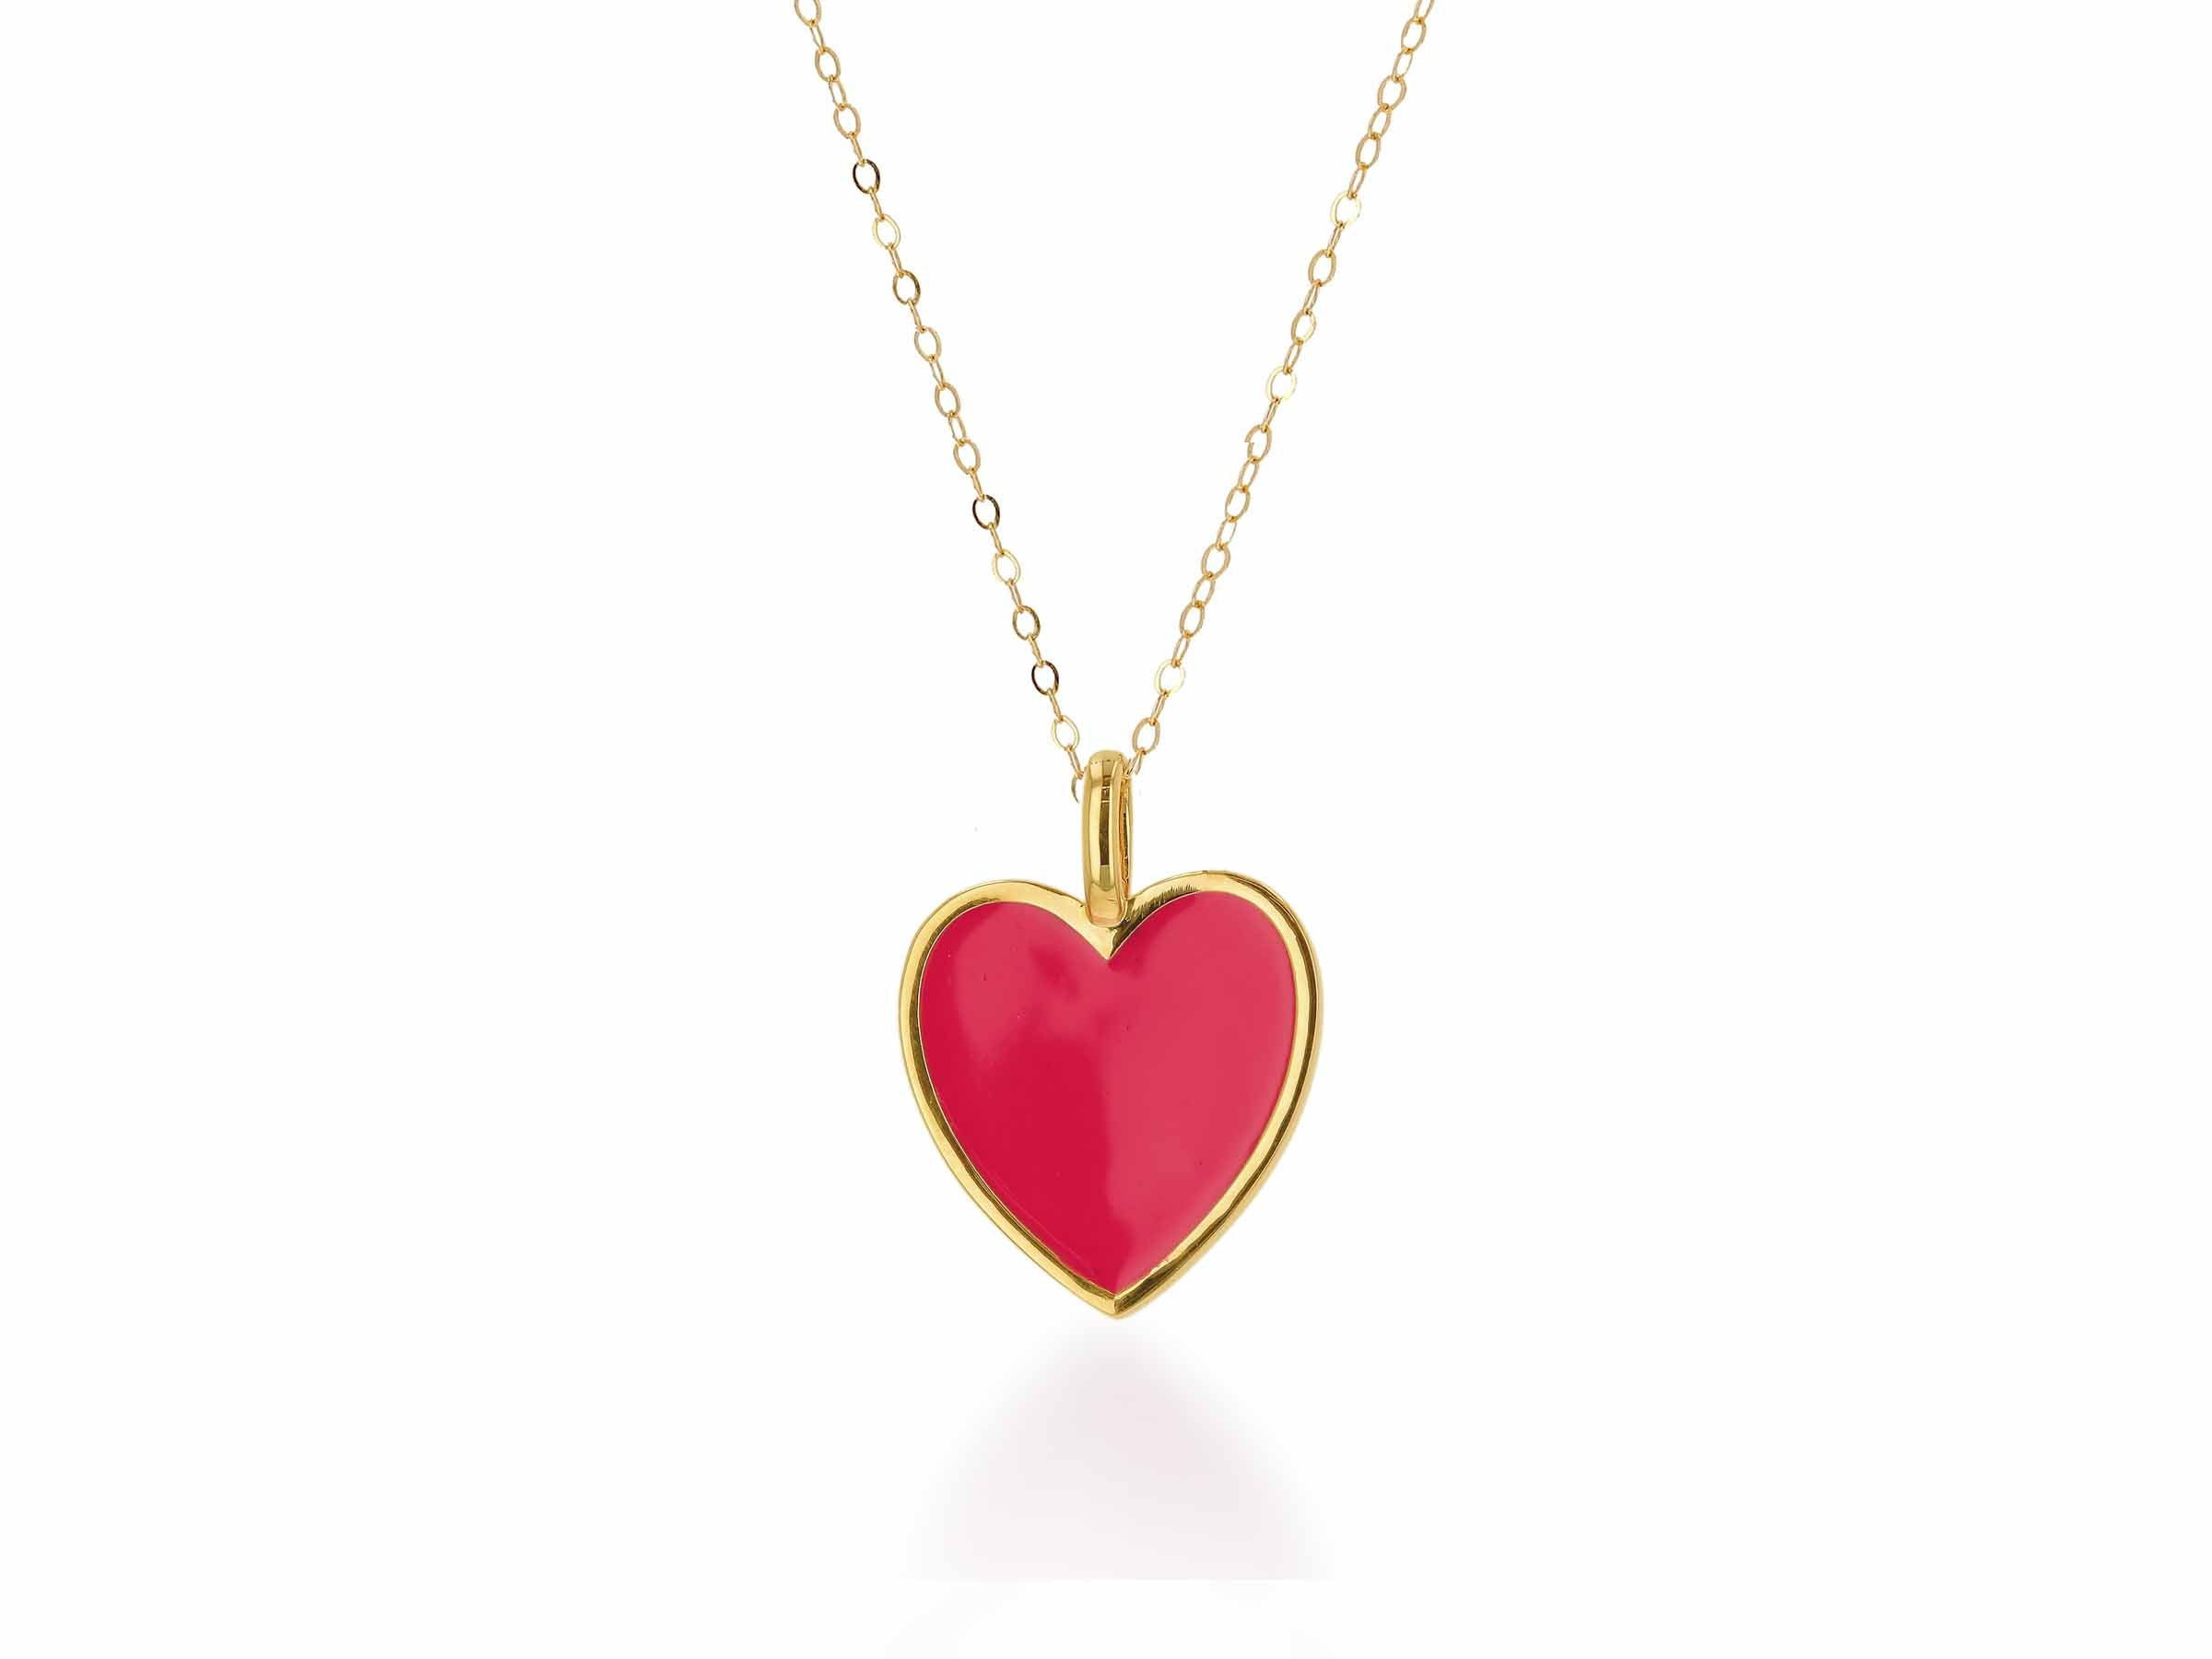 Oversized Hot Pink Enamel Heart Charm